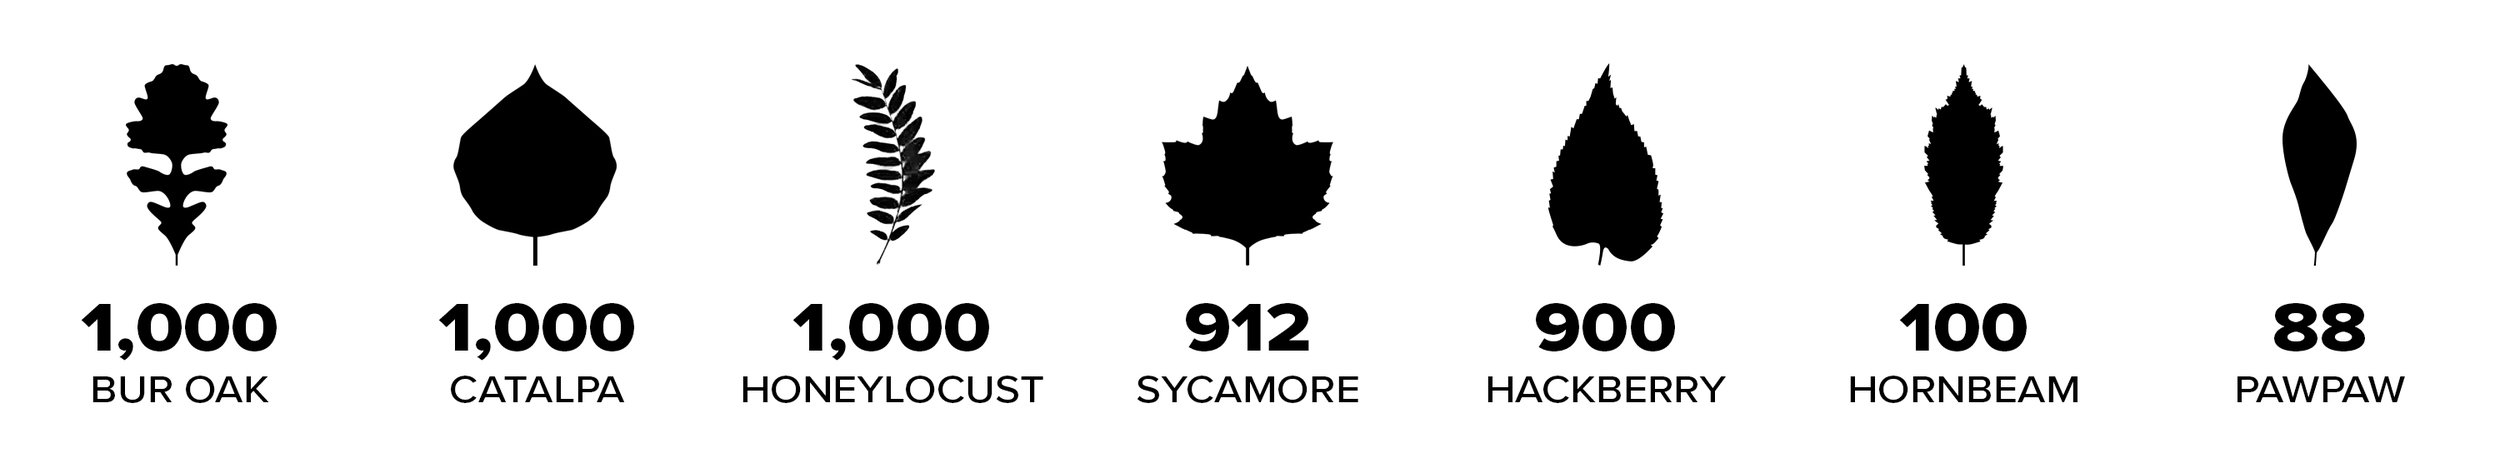 A breakdown of the 5,000 trees planted at Scioto Grove Metro Park on April 26, 2019 (Arbor Day)